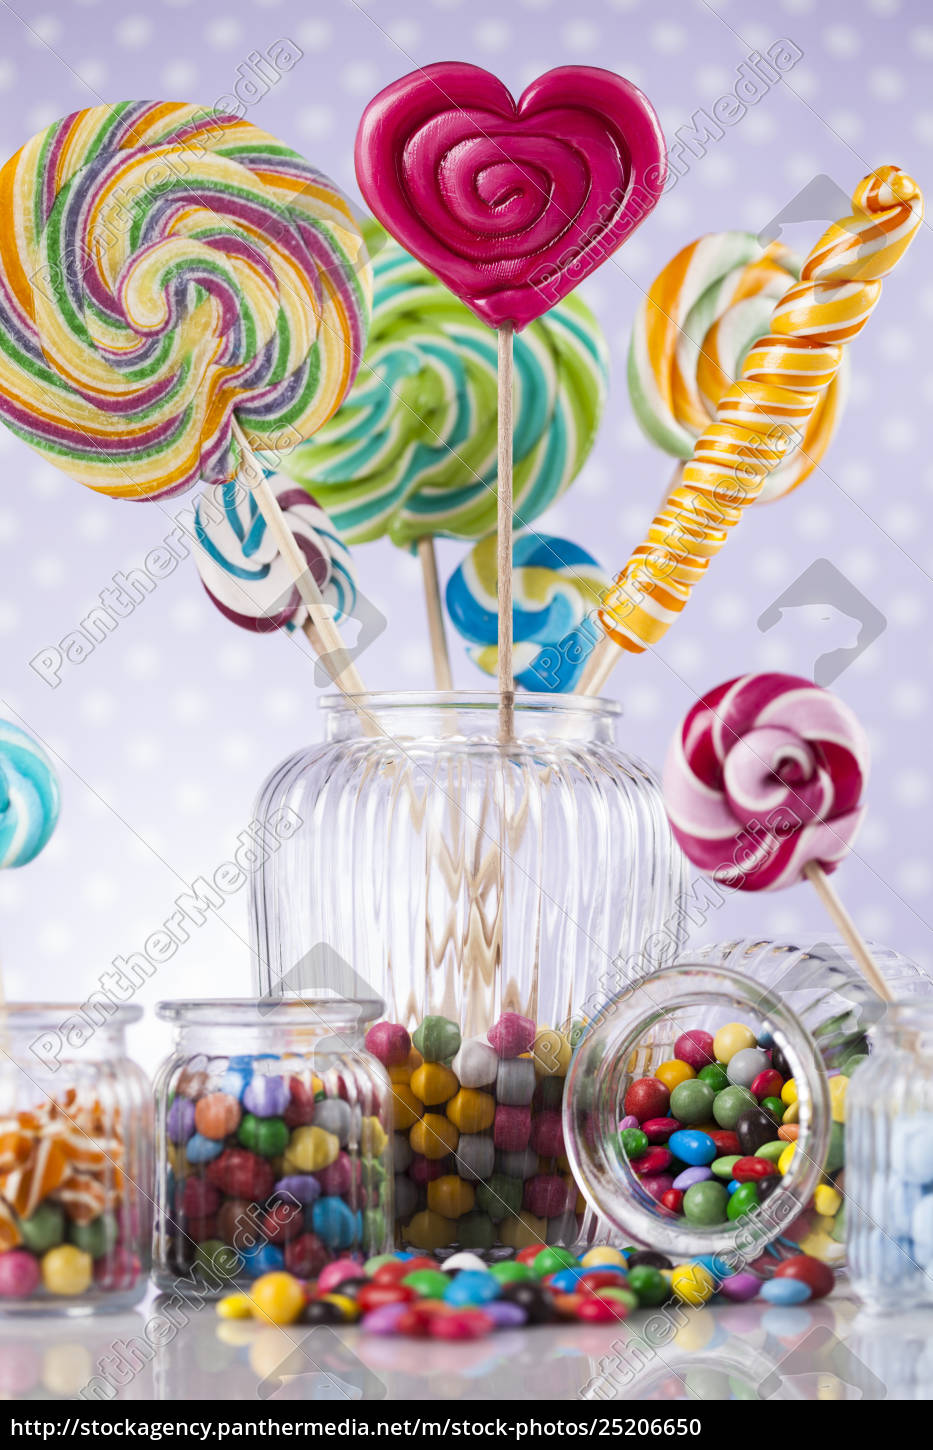 colorful, lollipops, and, different, colored, round - 25206650